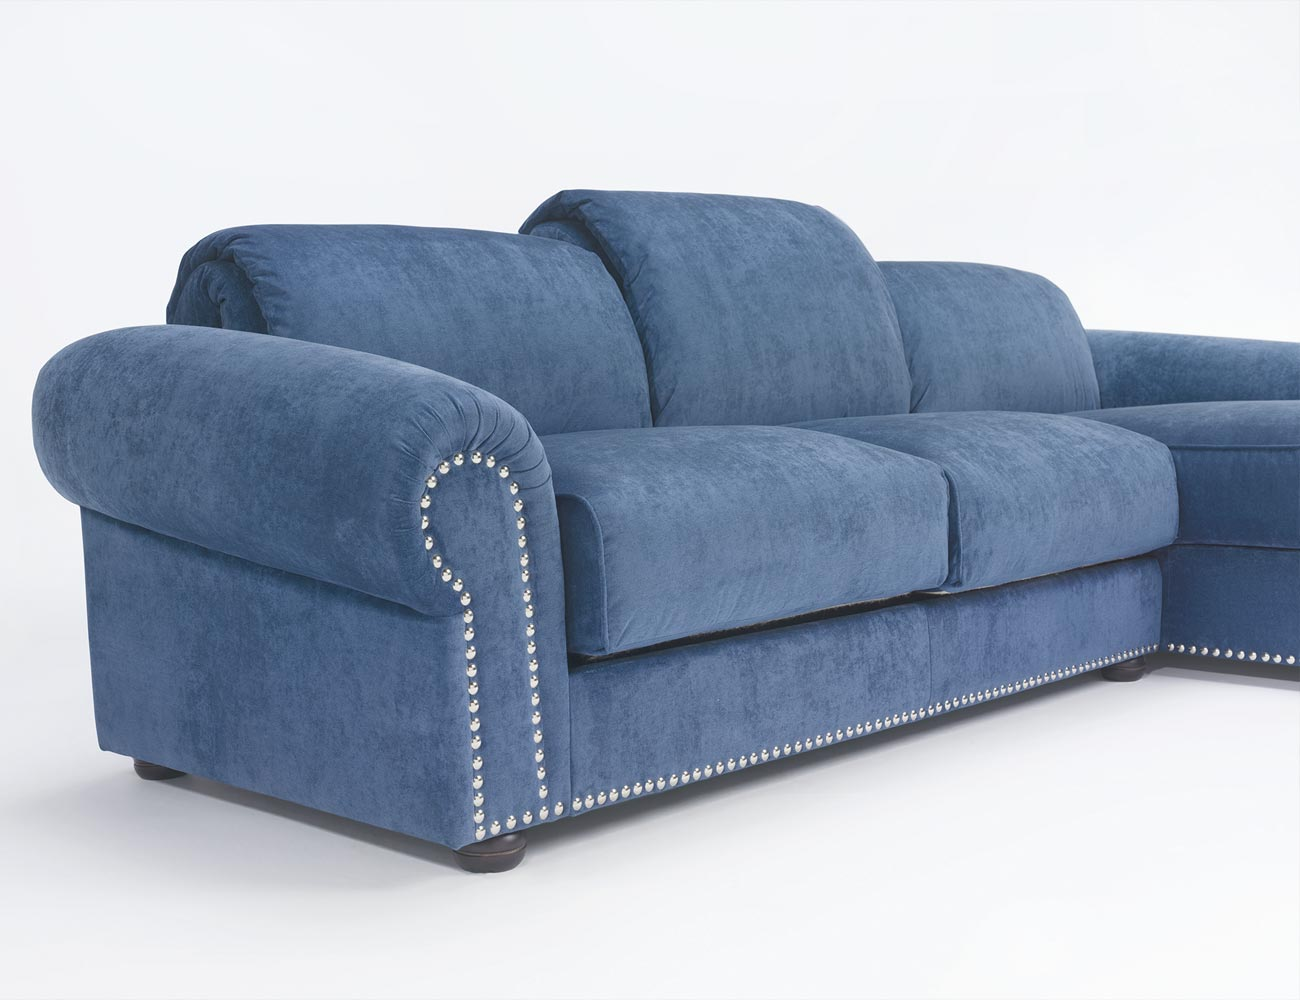 Sofa chaiselongue gran lujo decorativo azul 1